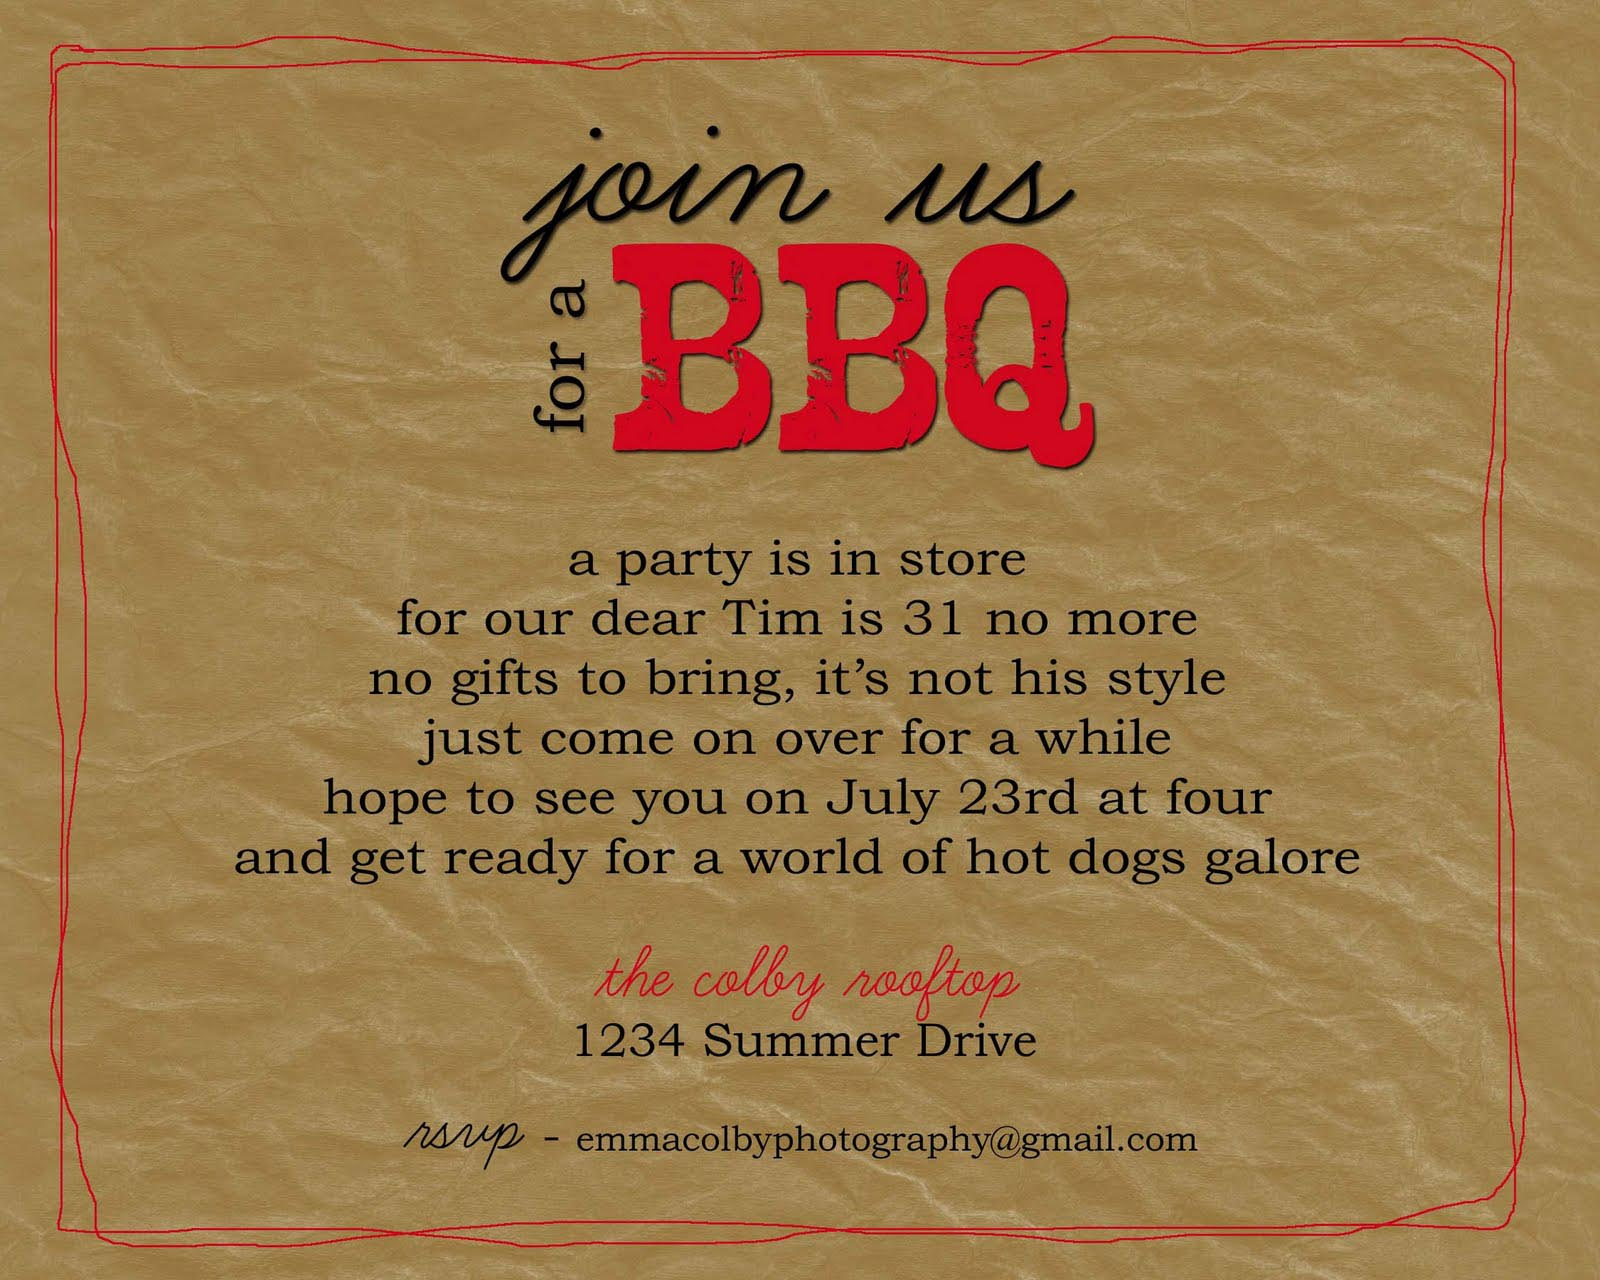 bbq party invitation wording fire pit design ideas. Black Bedroom Furniture Sets. Home Design Ideas